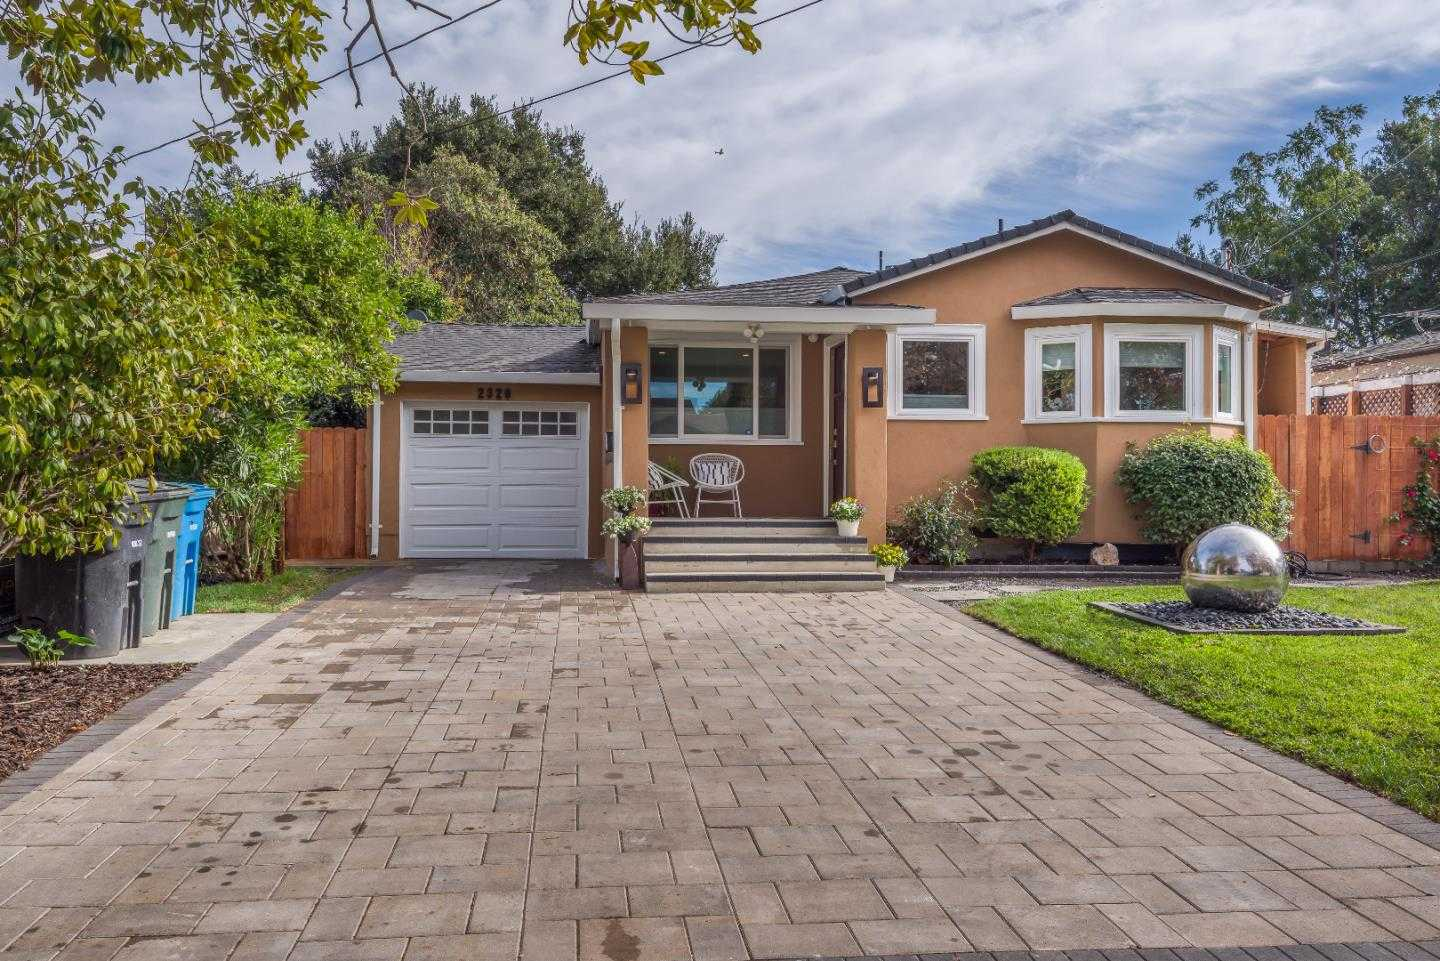 $869,000 - 2Br/1Ba -  for Sale in East Palo Alto